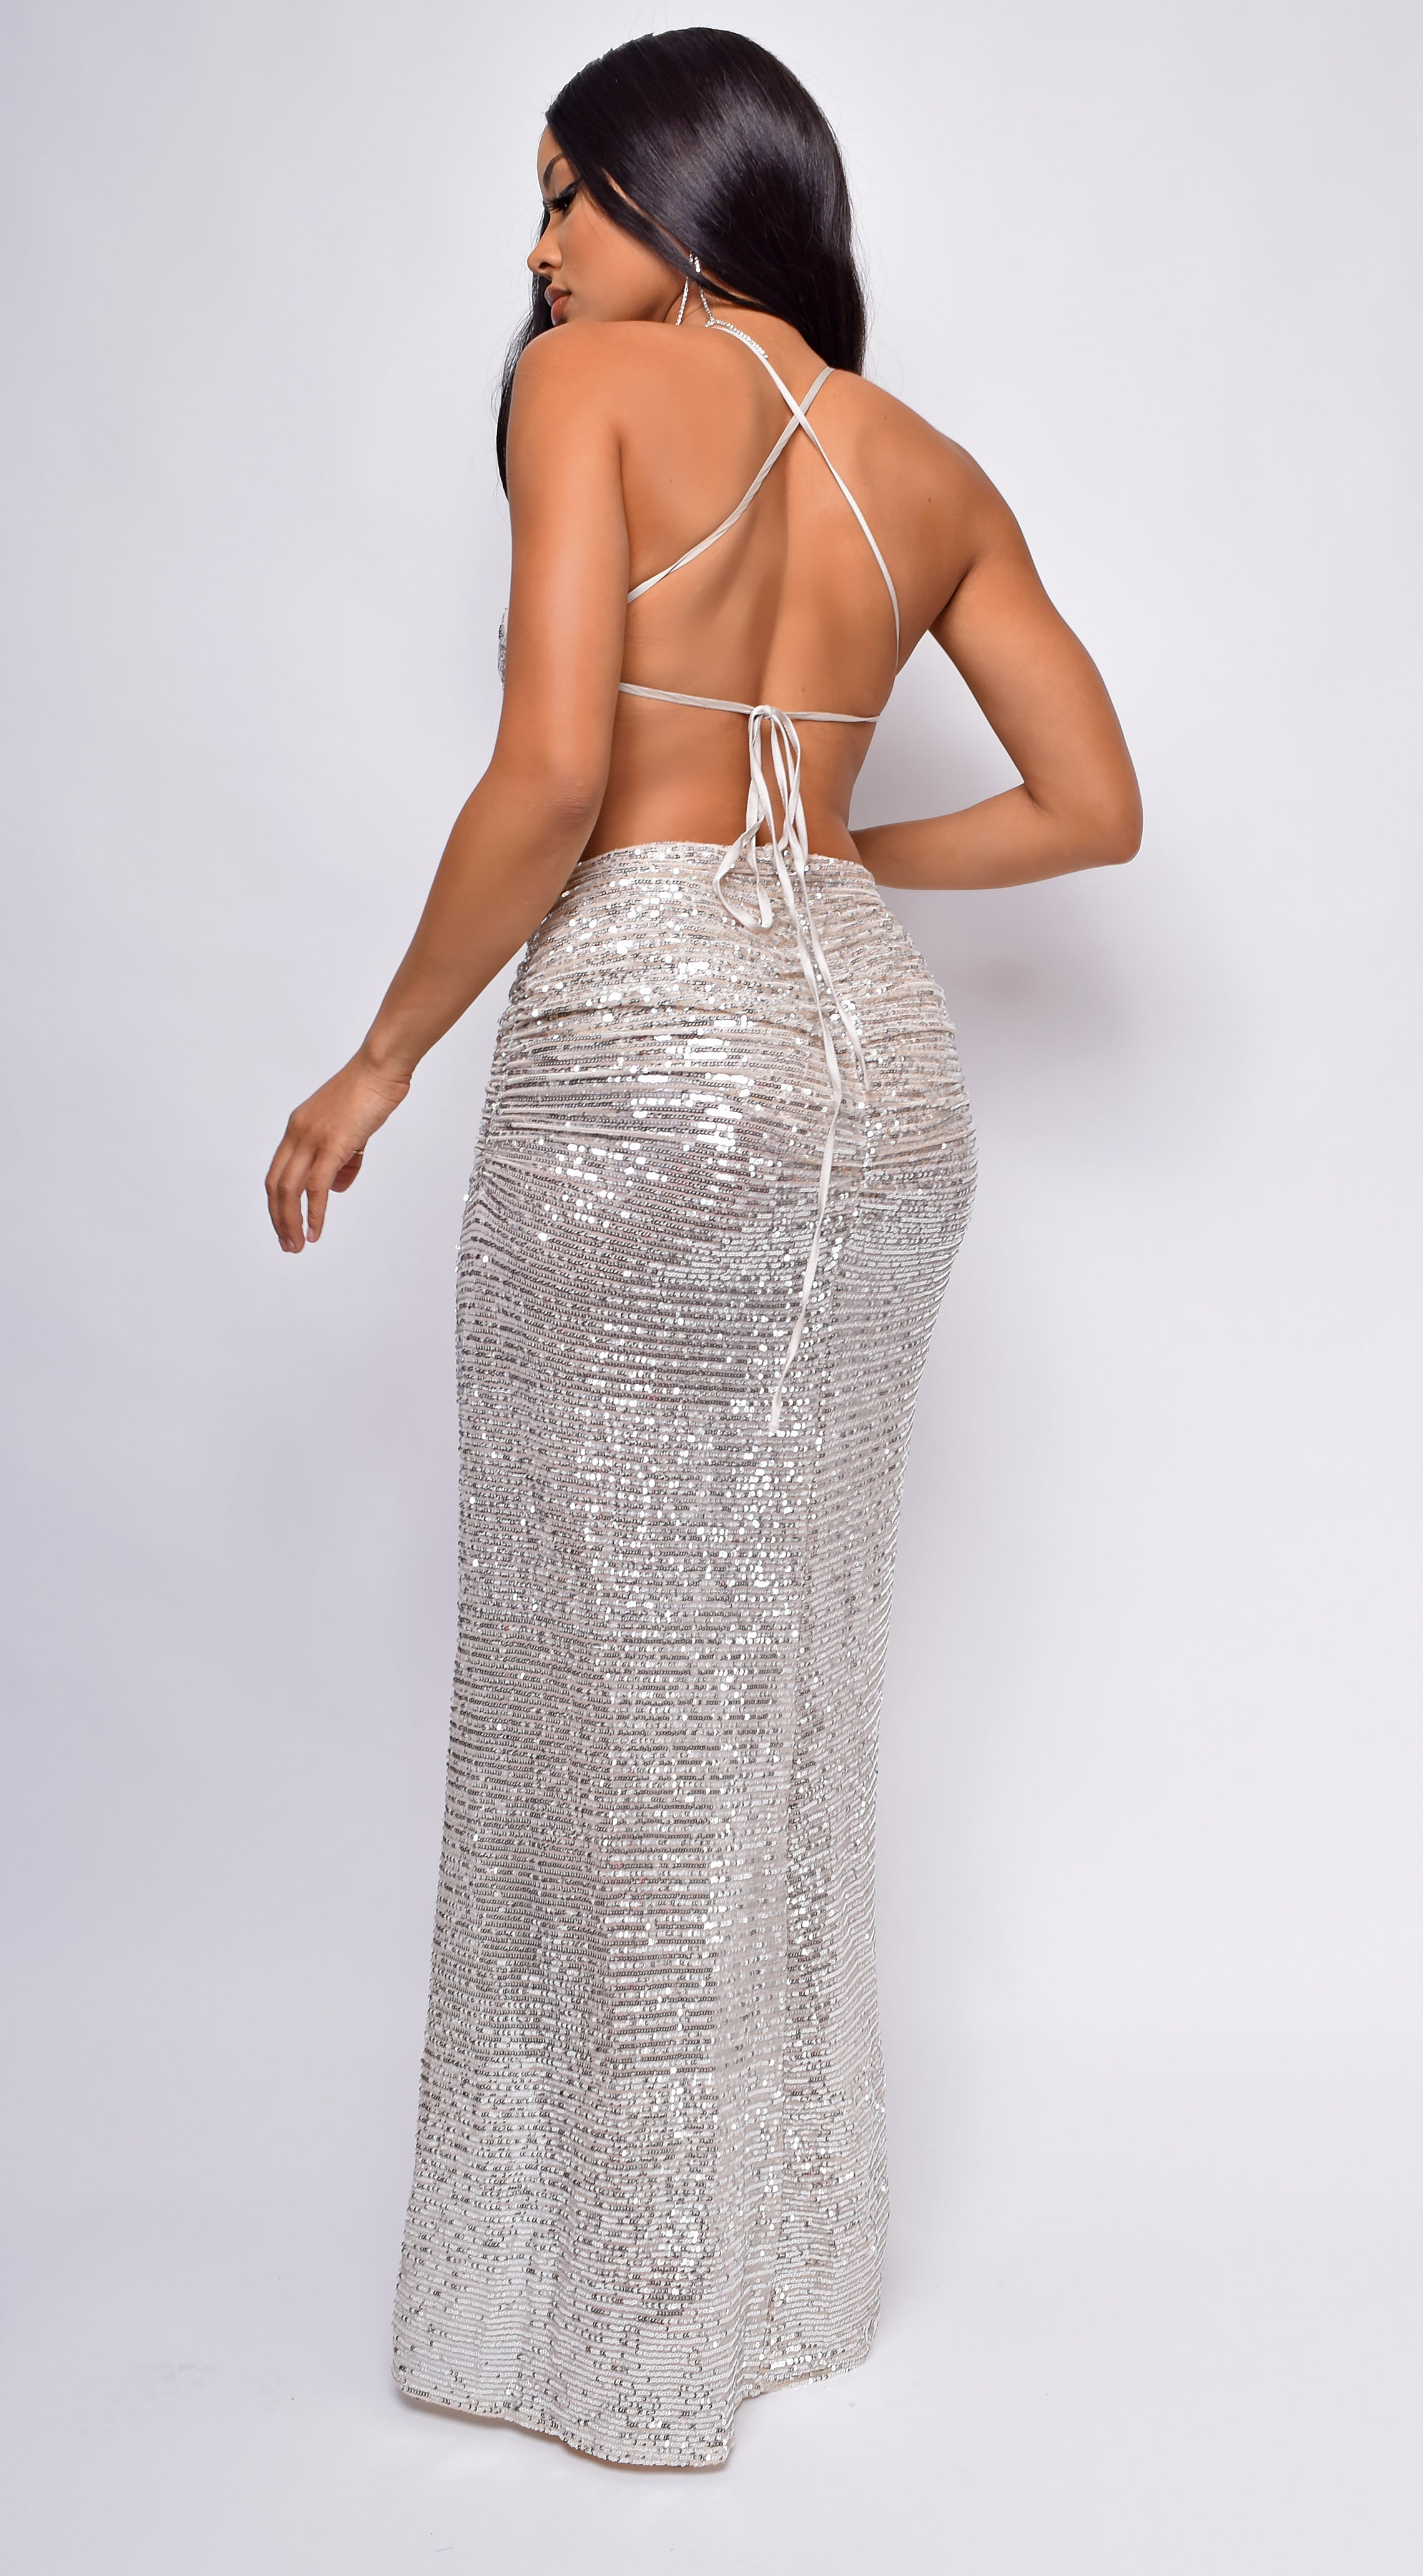 Azara Nude Silver Open Cross Back Sequin Gown